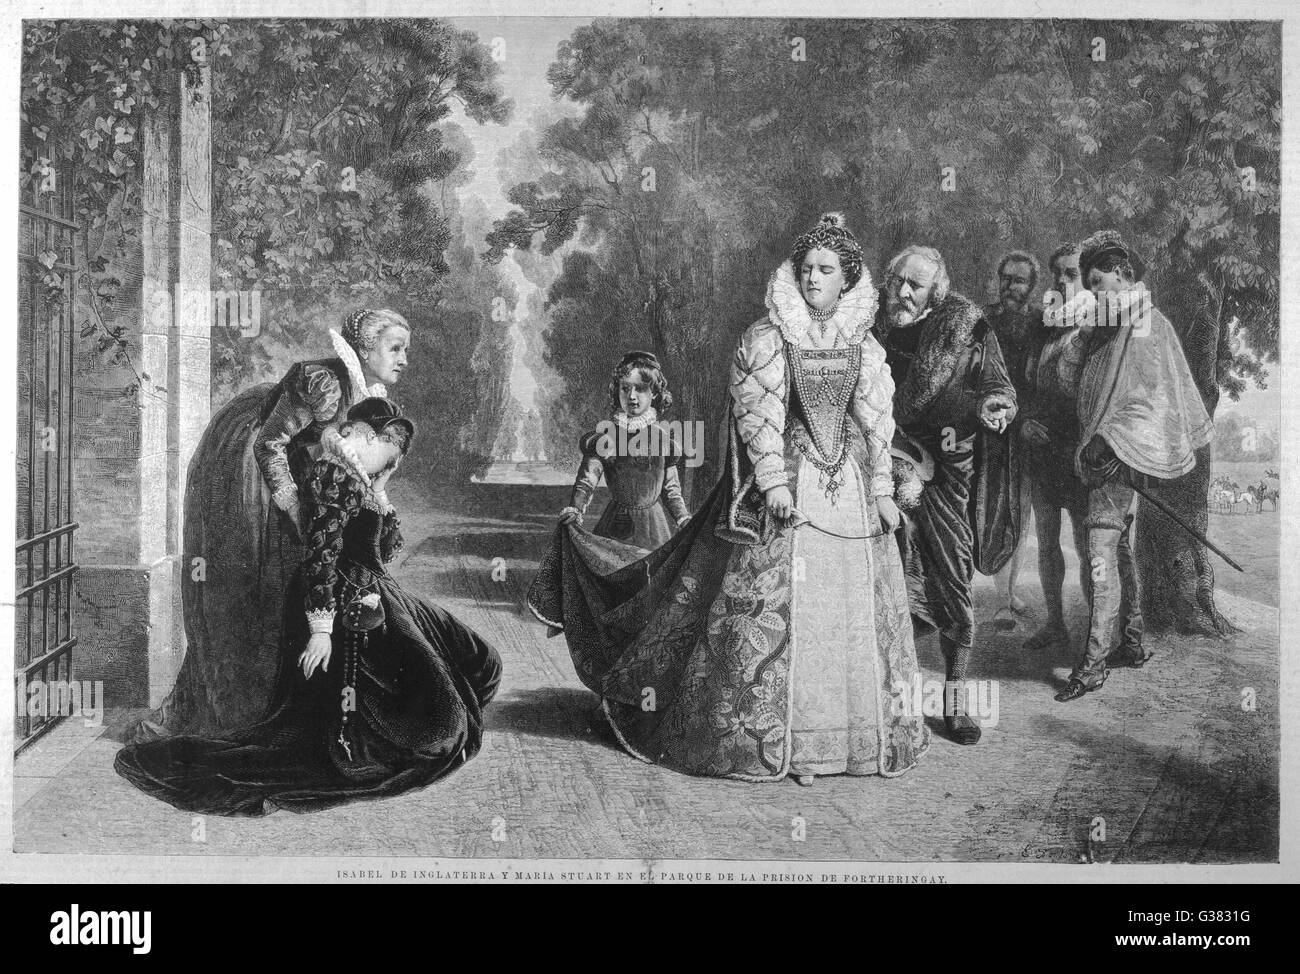 Elizabeth meets Mary Queen of  Scots in the park of  Fotheringhay - a scene from  Schiller's 'Mary Stuart' - Stock Image